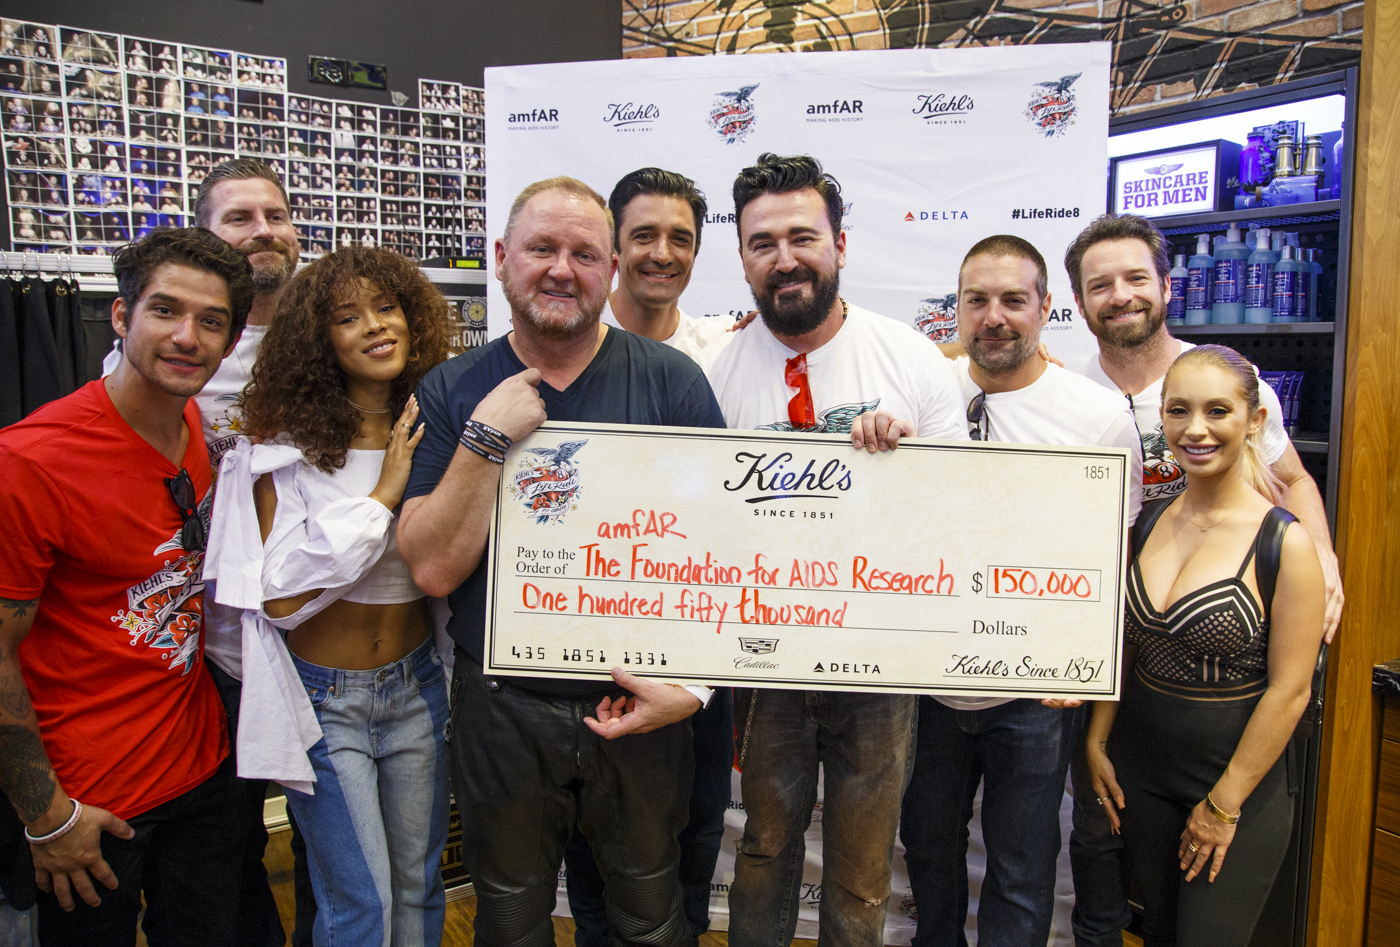 Celebs Ride into Chicago for Kiehl's LifeRide for amfAR